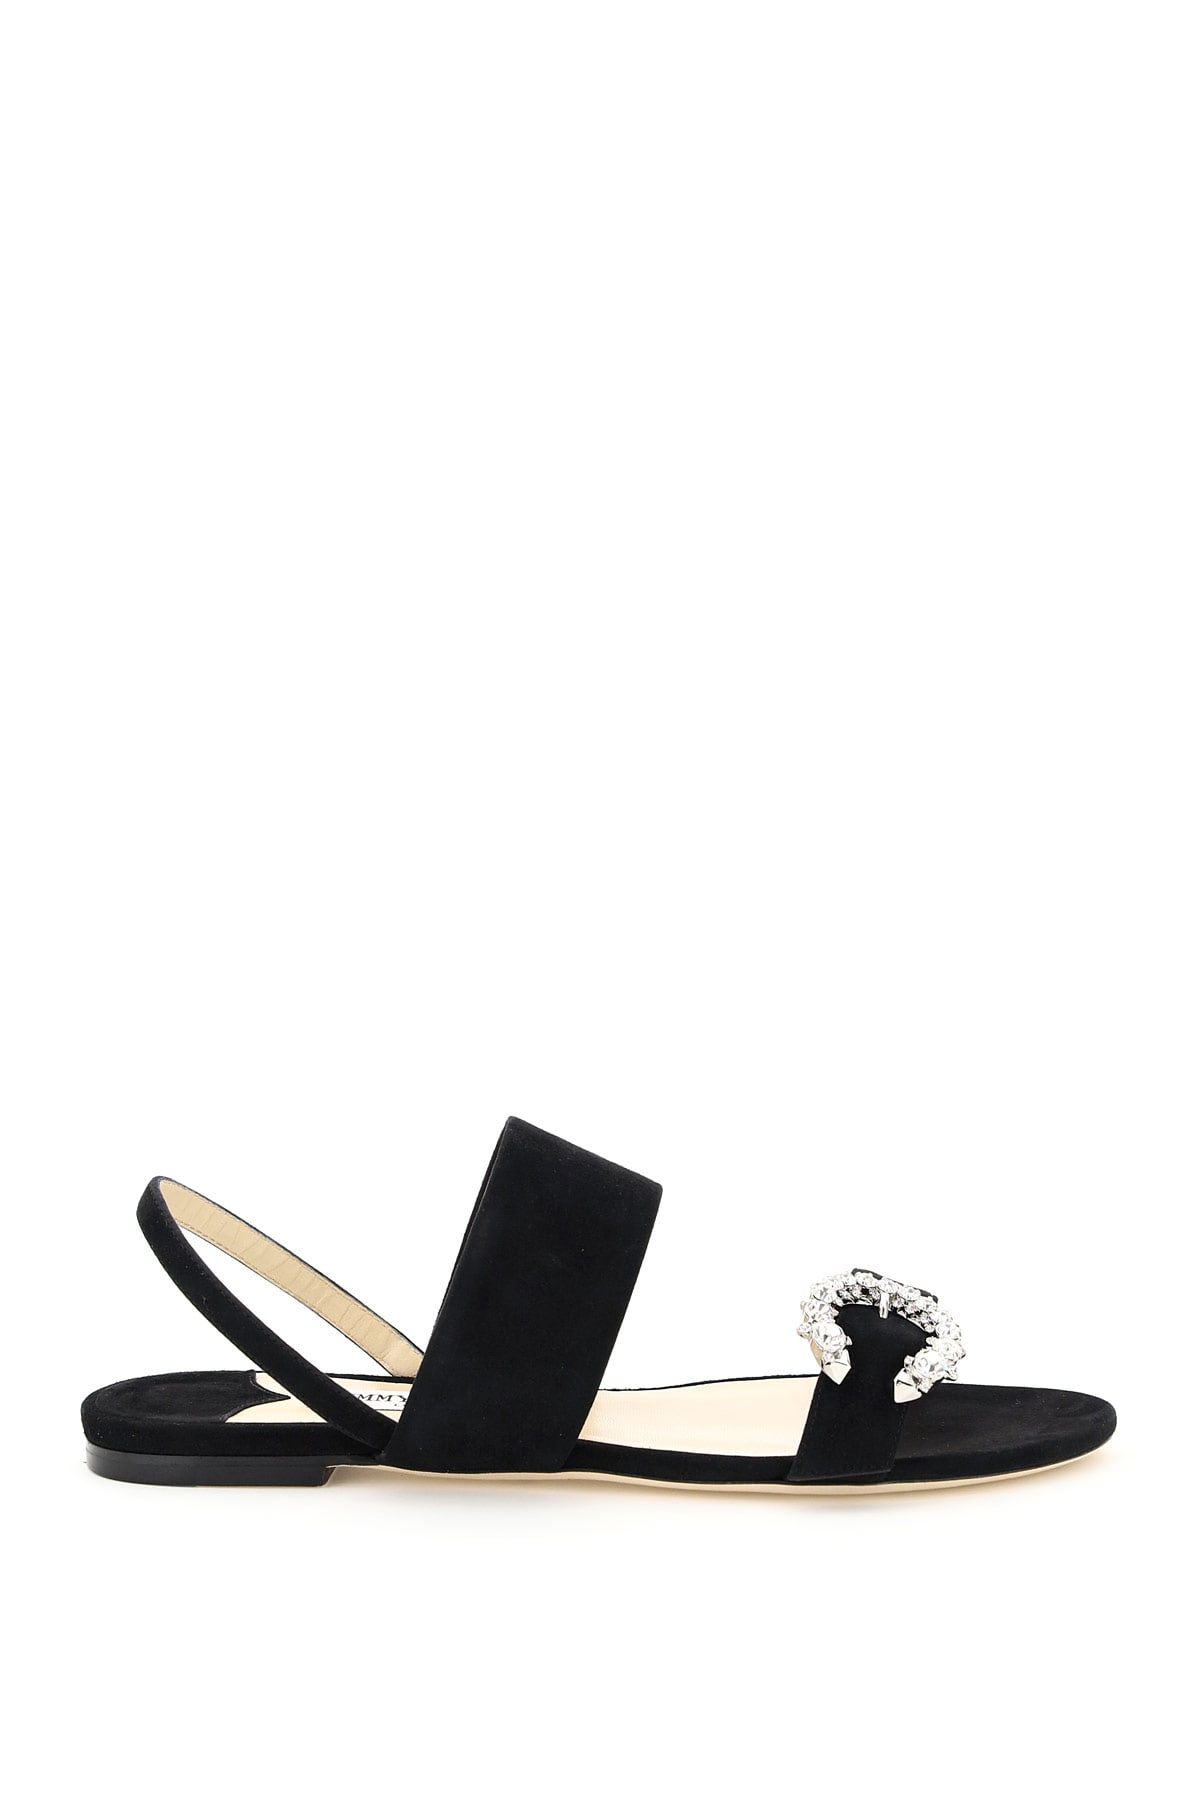 JIMMY CHOO SAPHERA FLAT SUEDE SANDALS WITH CRYSTAL BUCKLE